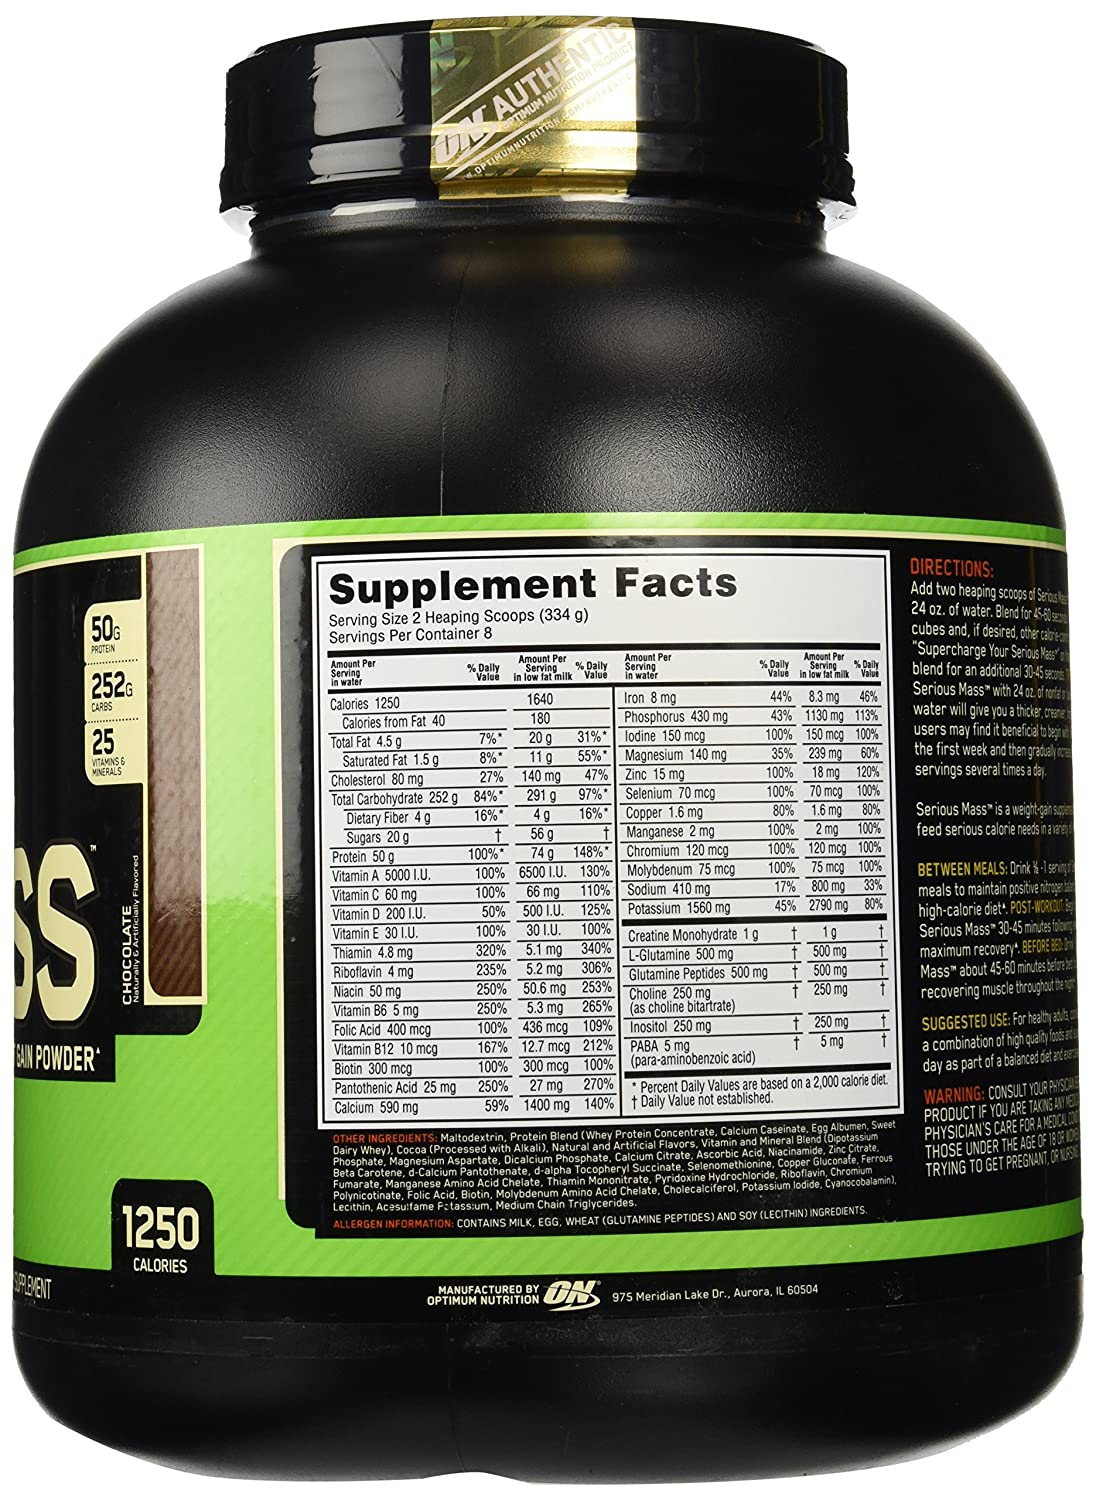 Mass Nutrition. , likes · 71 talking about this. wxilkjkj.tk - Australia's premium provider of sports supplements and advice. Over